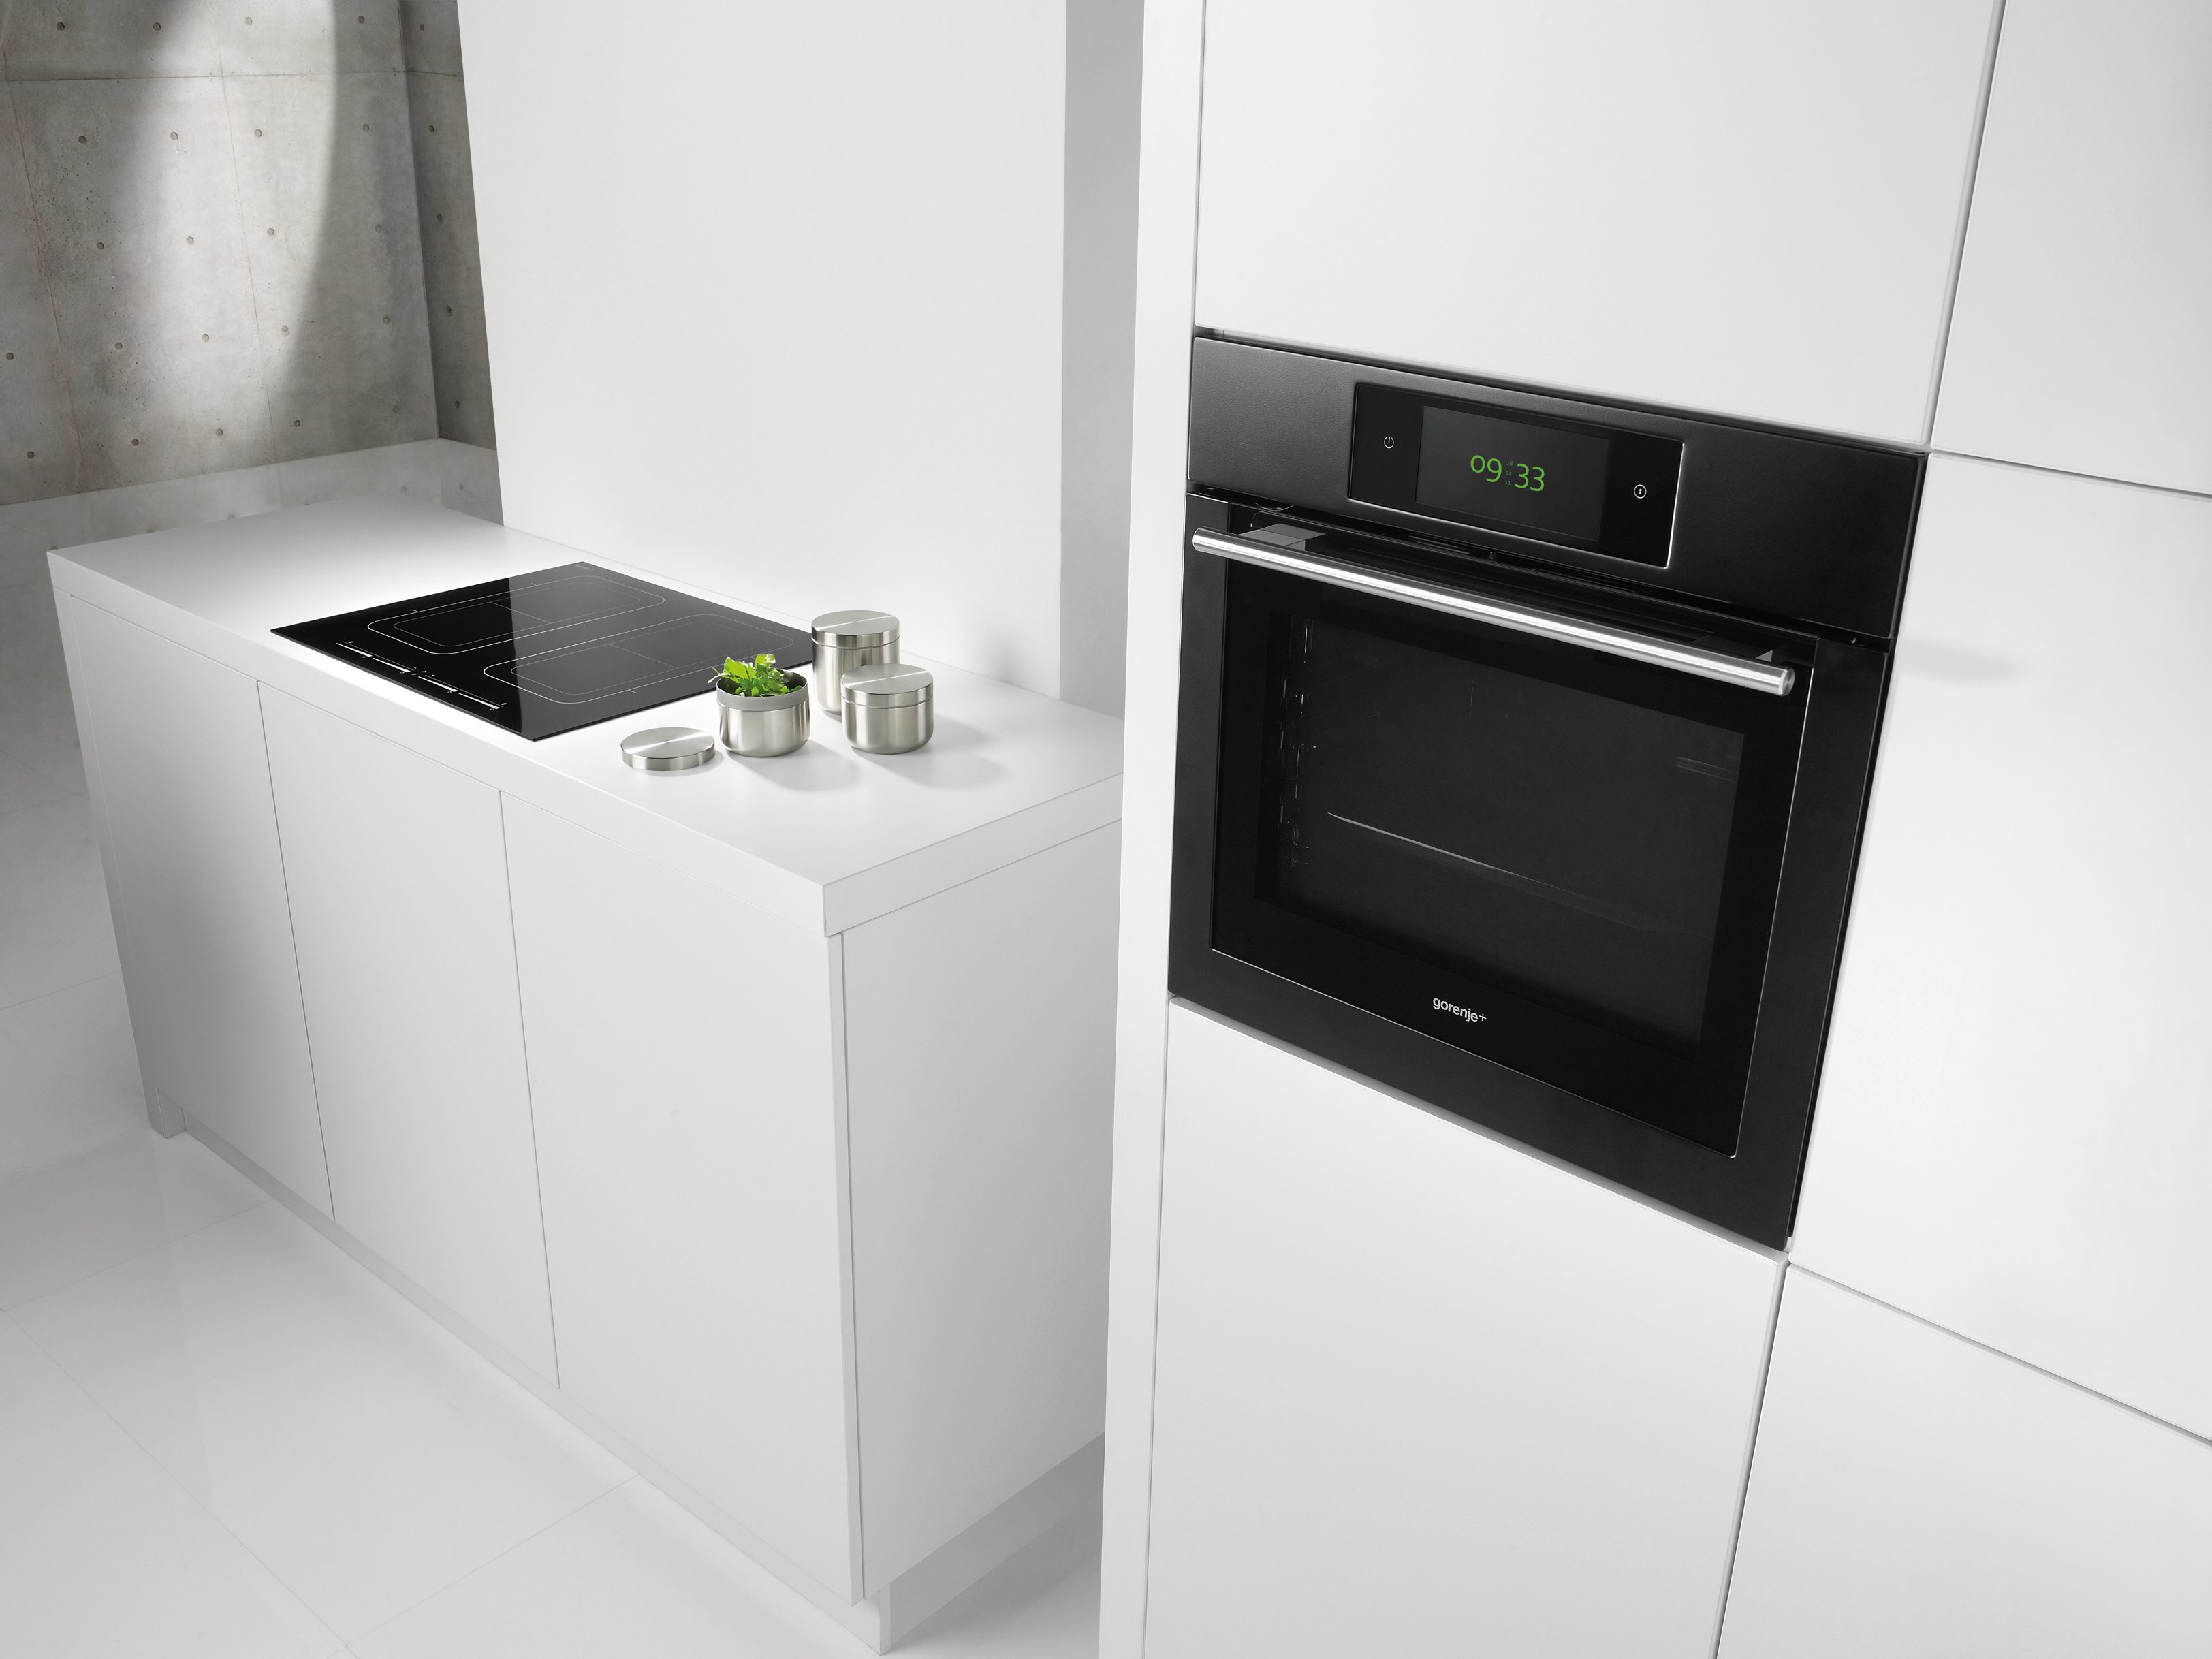 Uncategorized Gorenje Kitchen Appliances gorenje launches its new brand group her with gorenjes latest innovation the ichef oven at launching ceremony petra did not hesitate to put on an apron and pick up a s